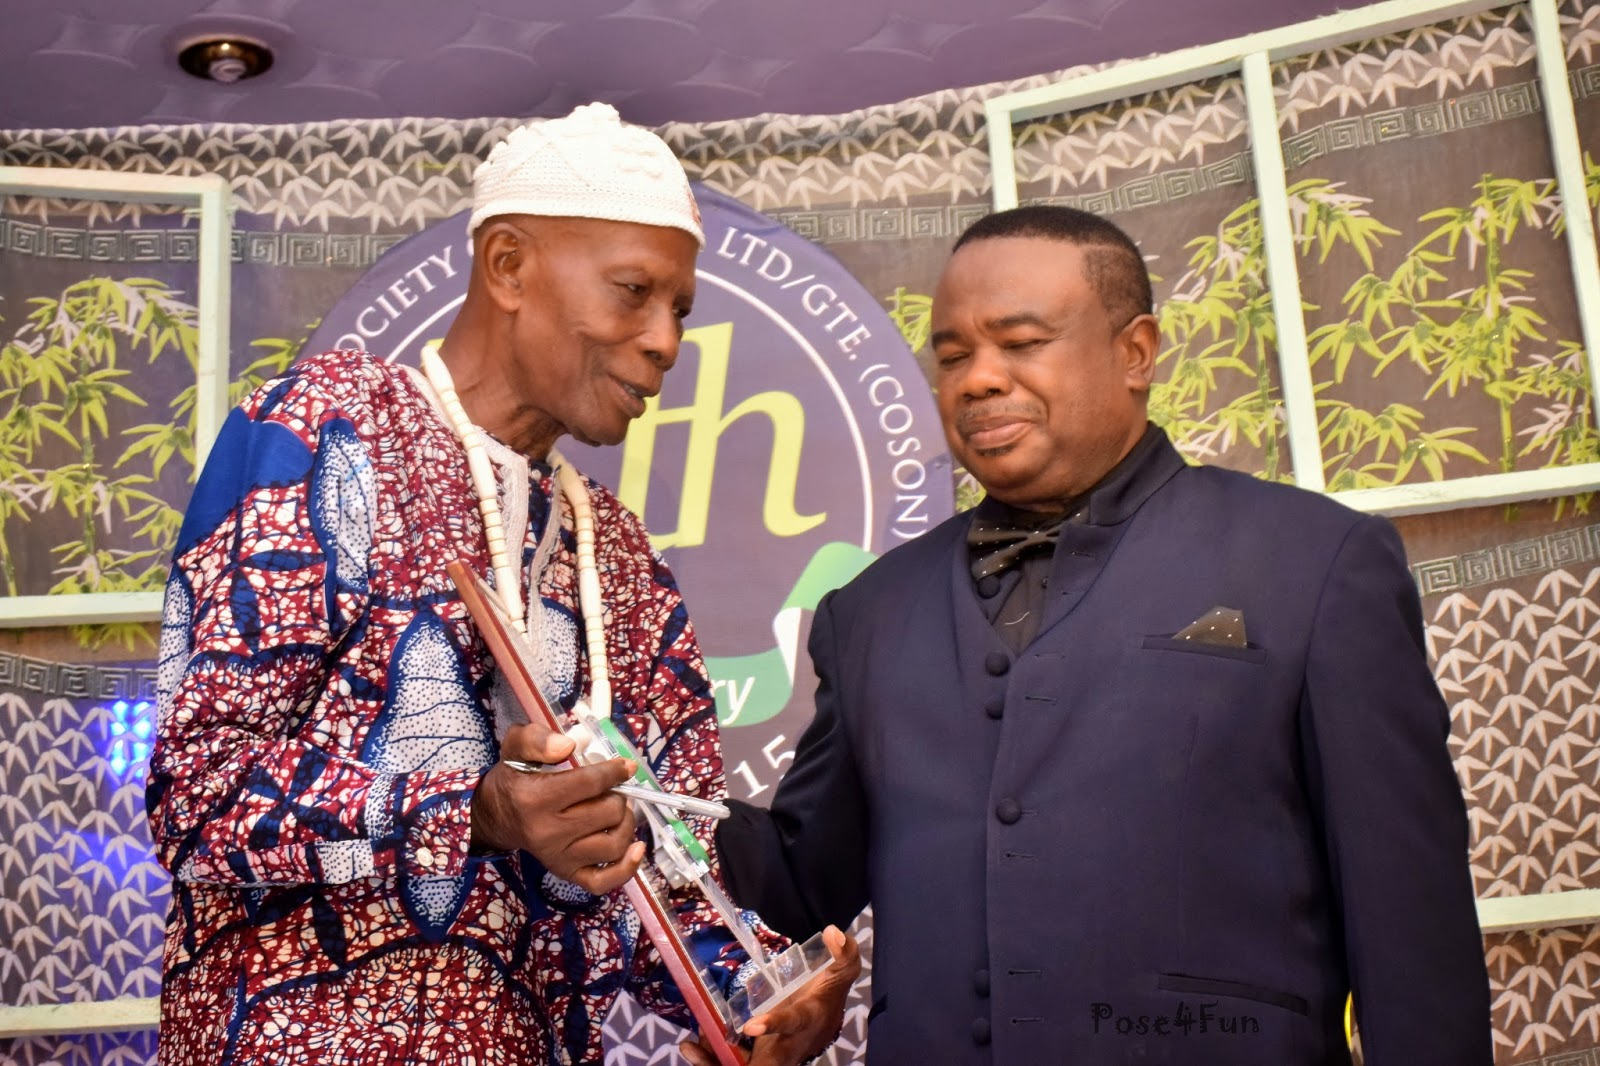 EMMANUEL NTIA, COSON OLDEST MEMBER, PASSES ON